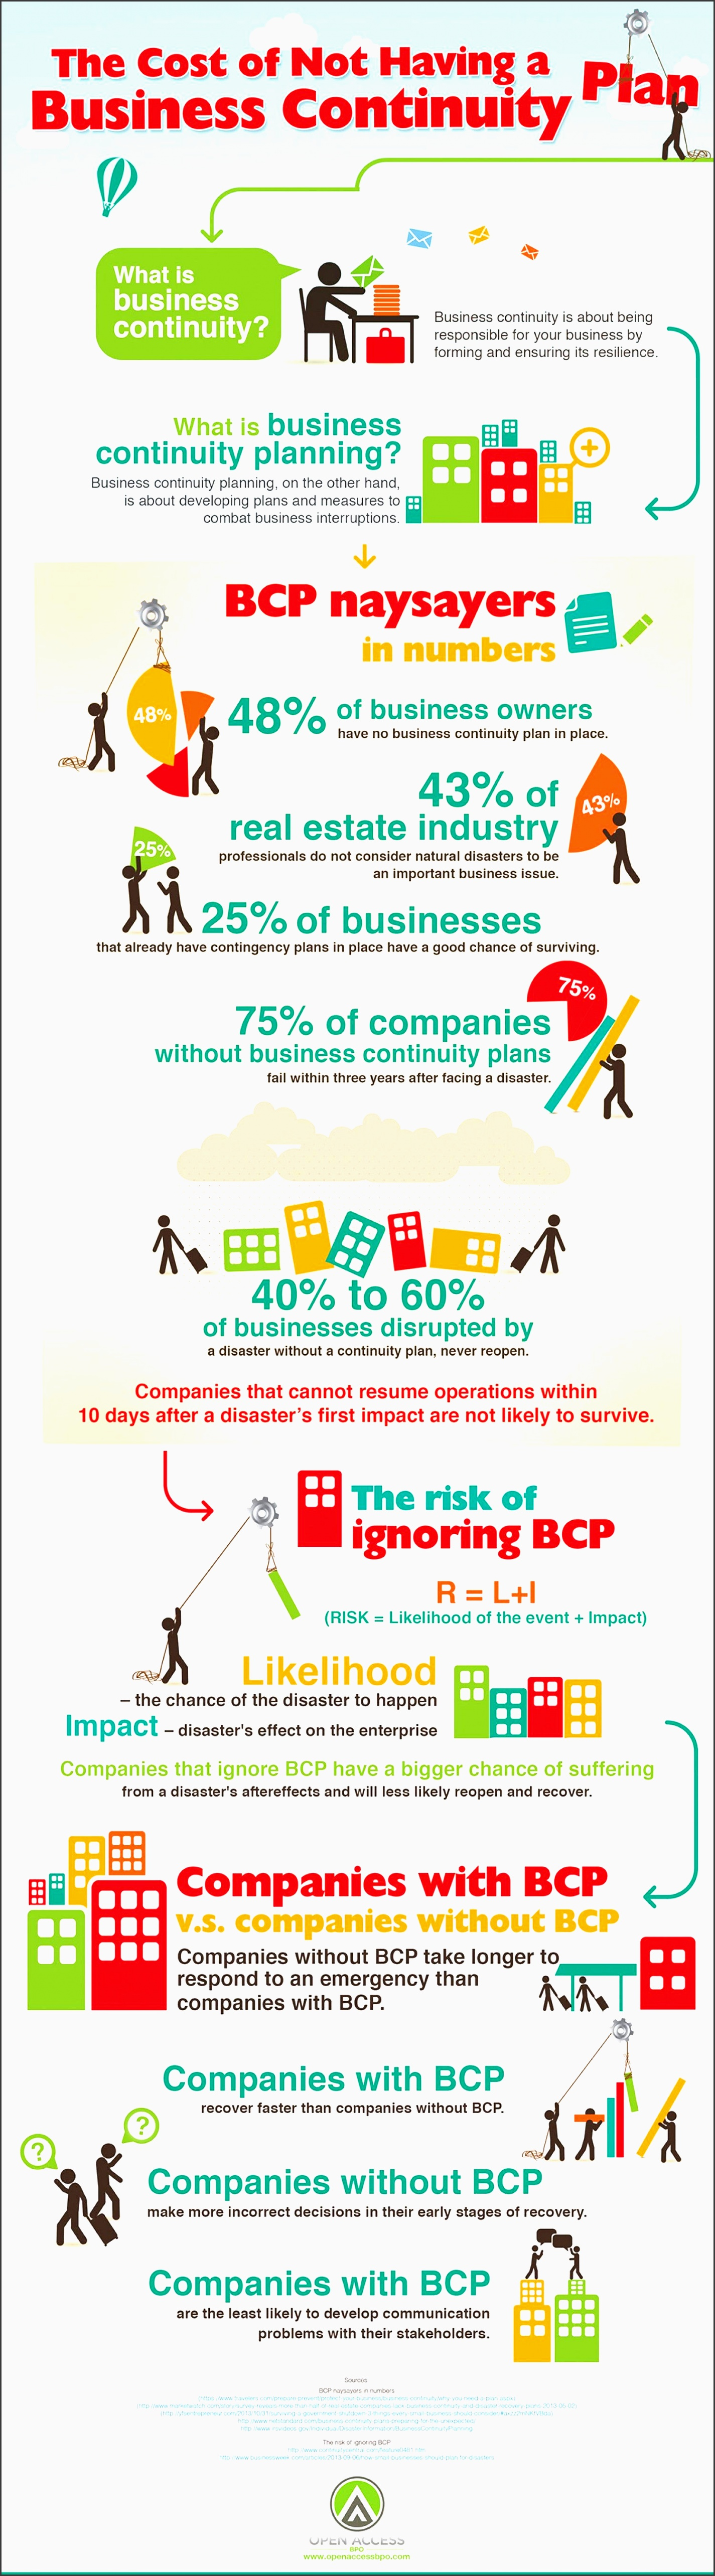 25 unique business continuity planning ideas on pinterest continuity of government risk management and insurance business